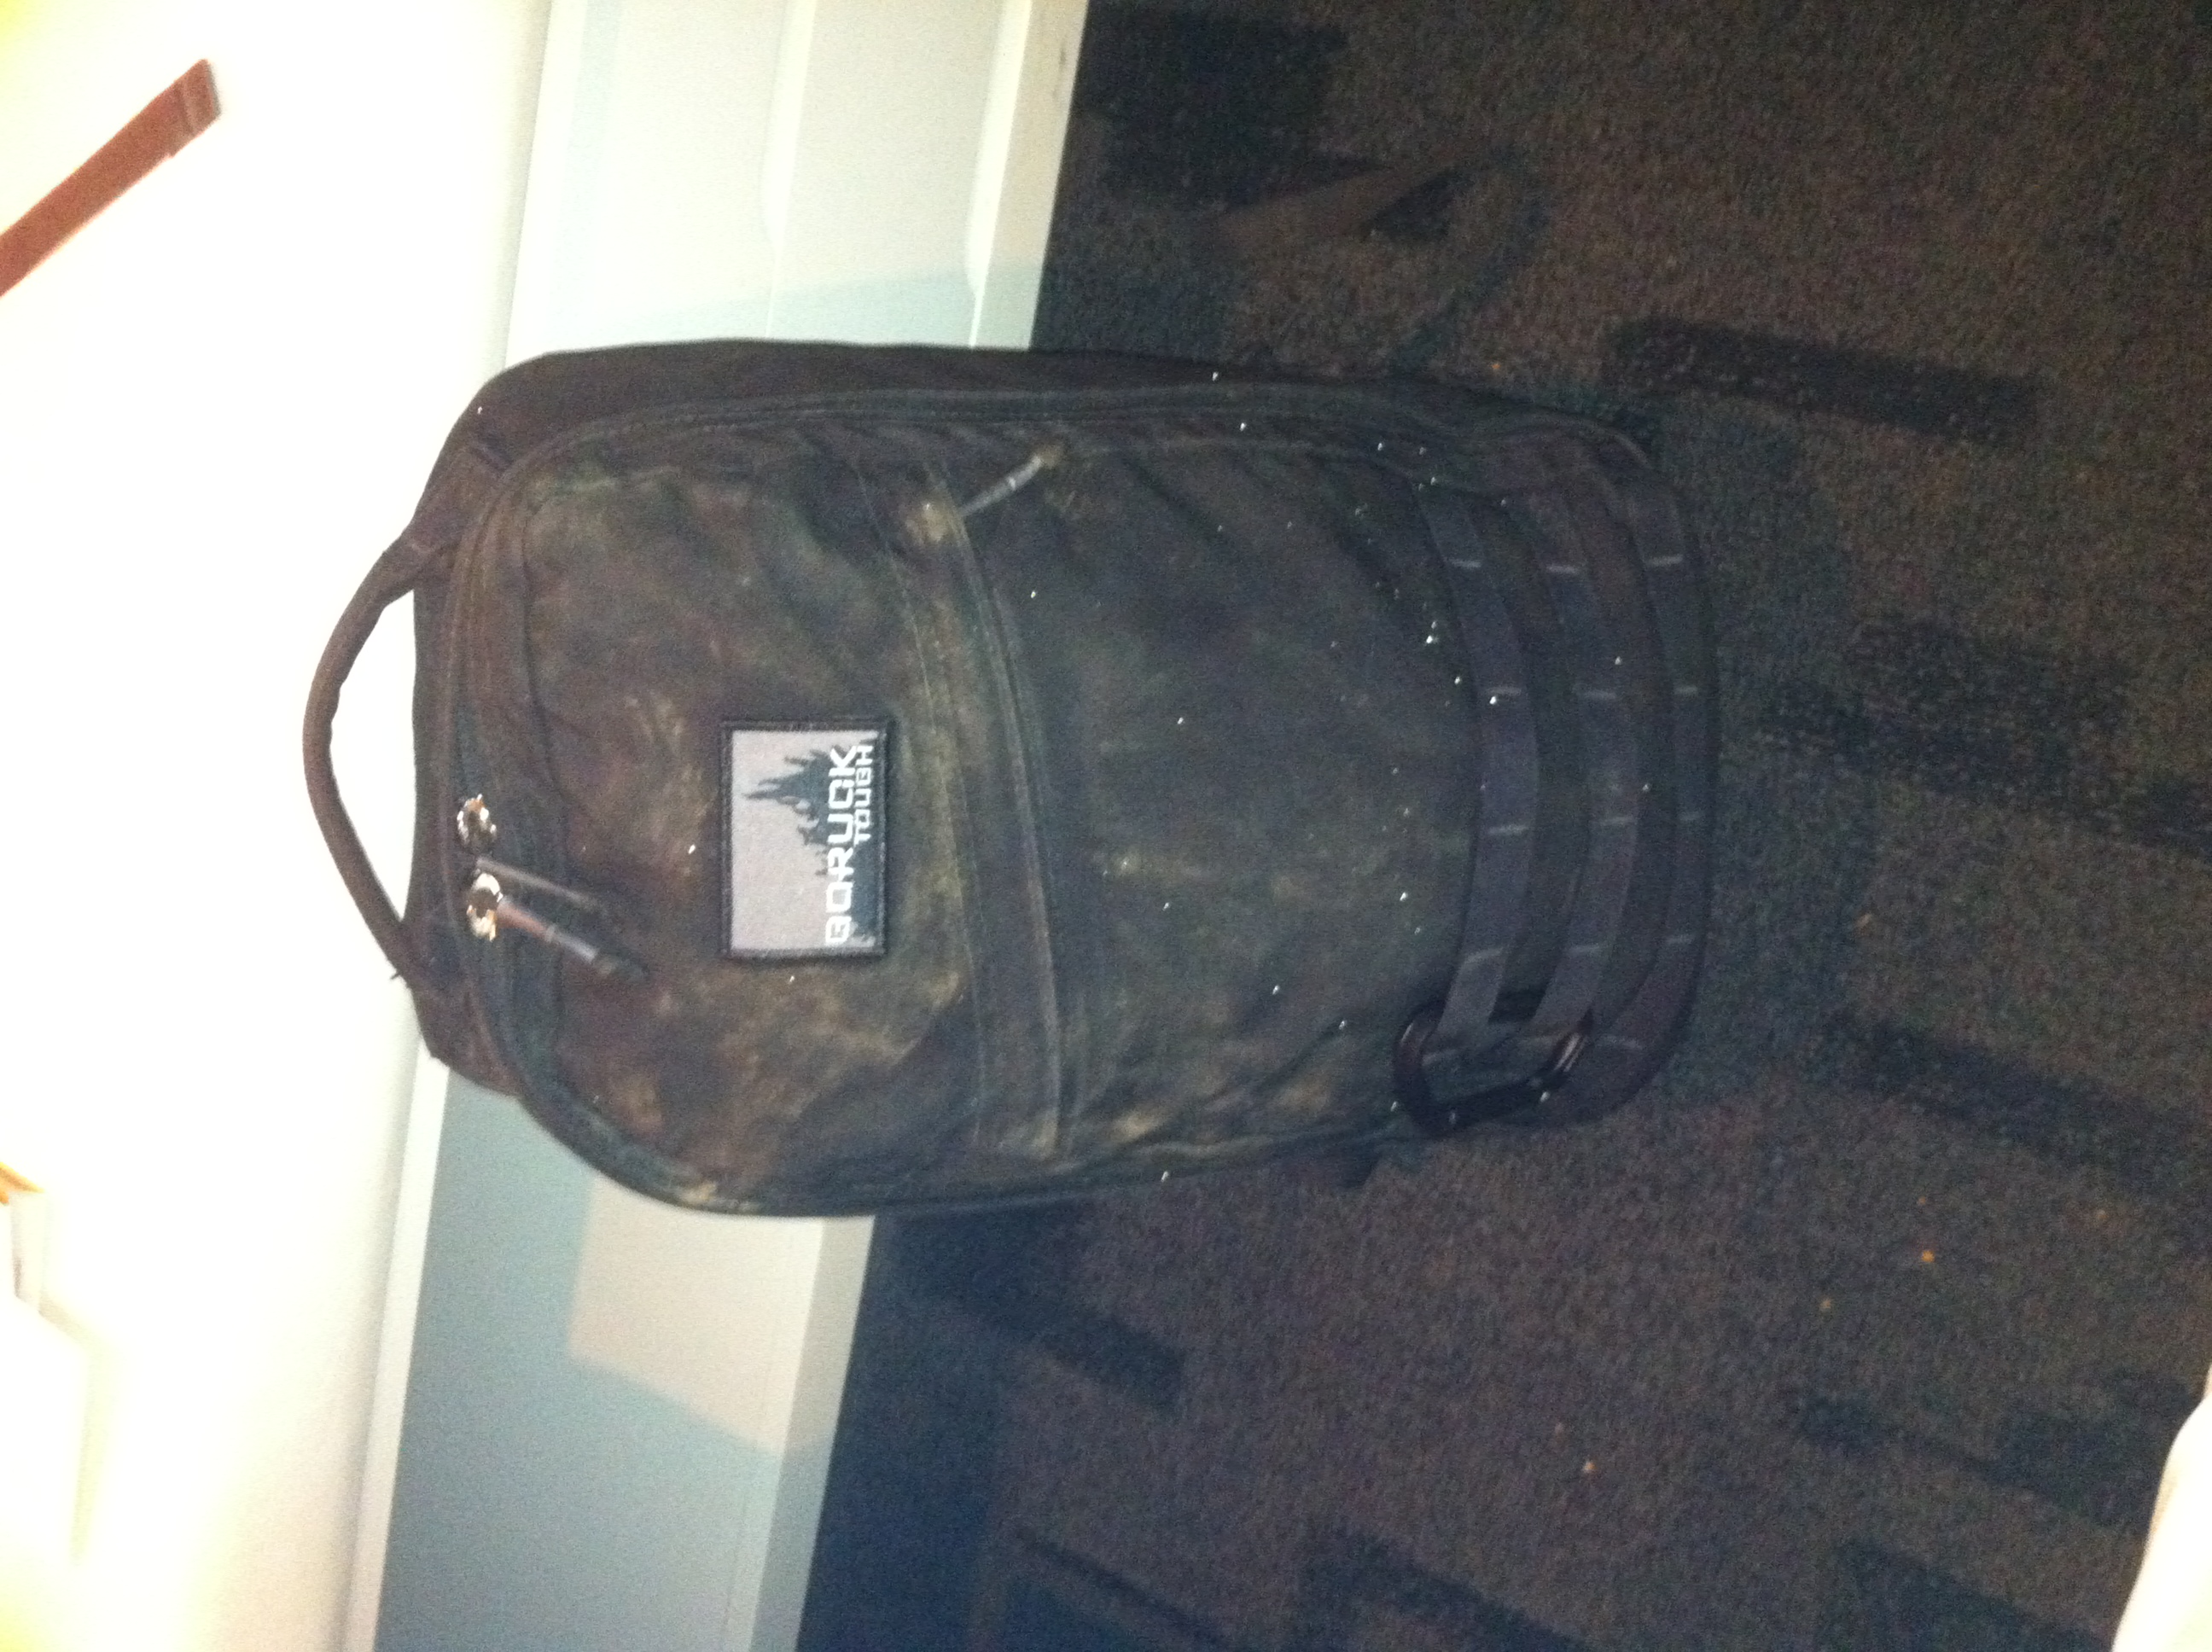 My GORUCK GR1 with the GORUCK Tough patch earned after the GRC.